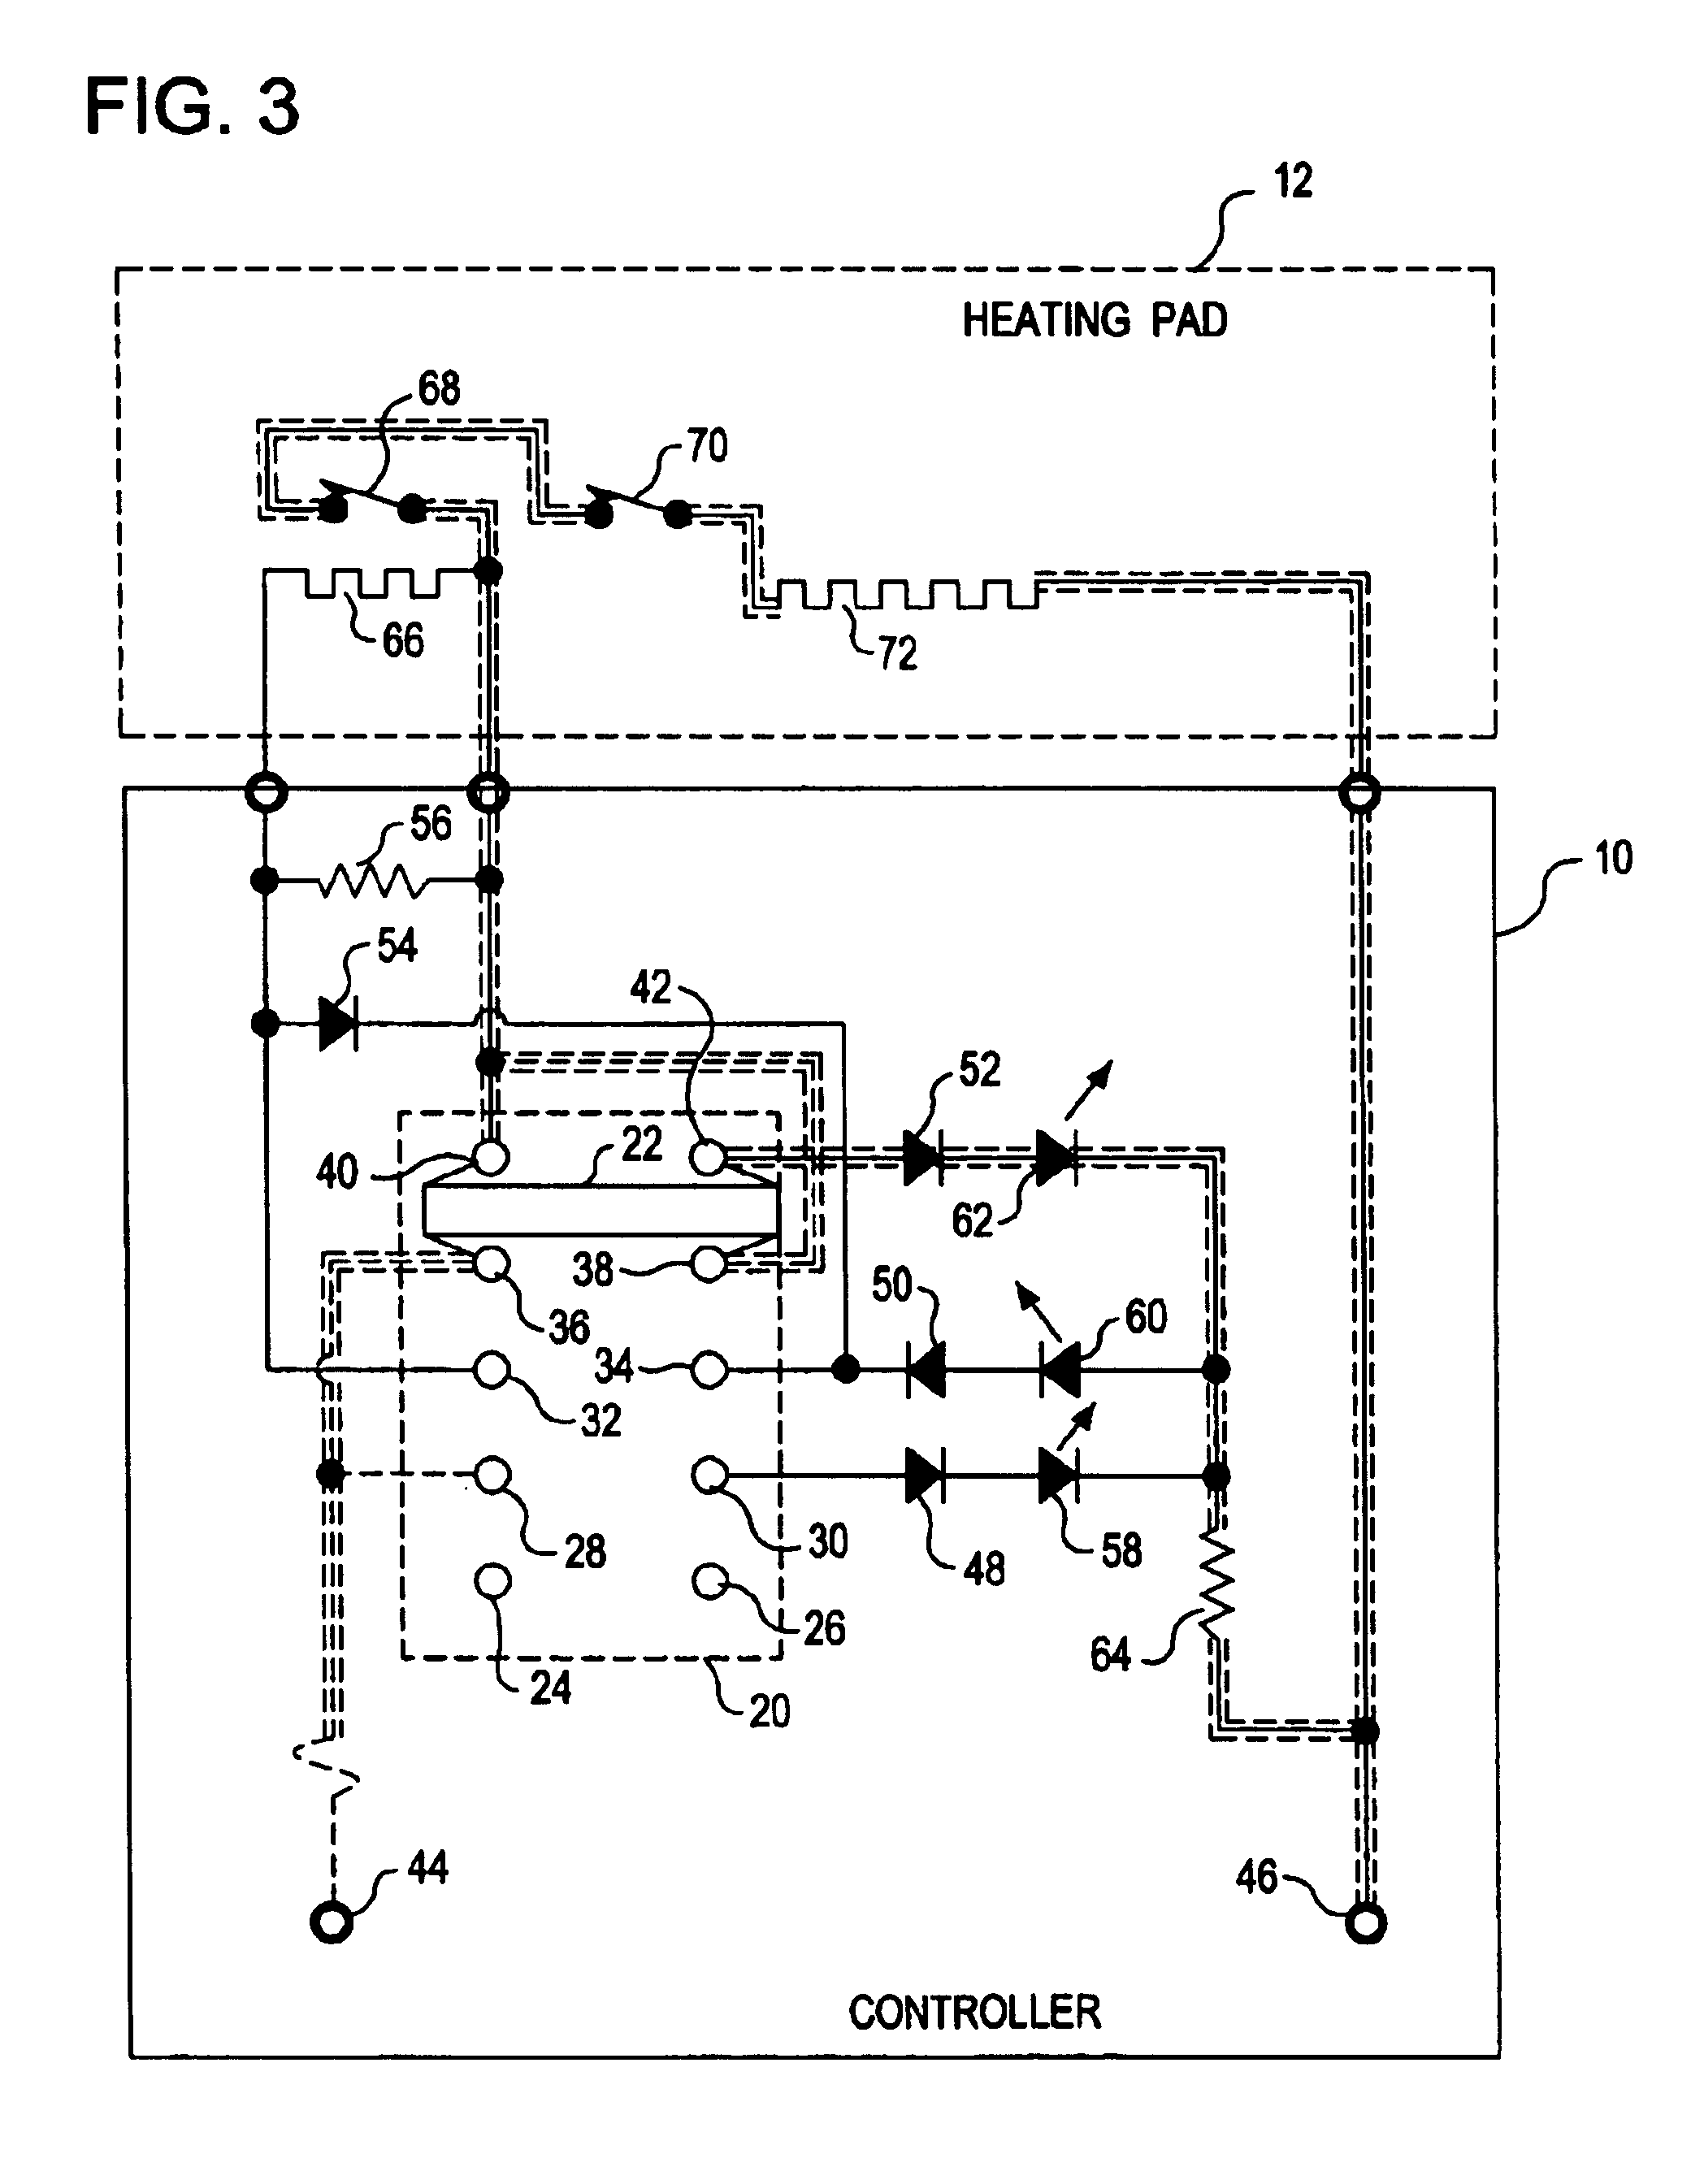 US06884973 20050426 D00003 patent us6884973 heating pad controller with multiple position Simple Wiring Schematics at crackthecode.co